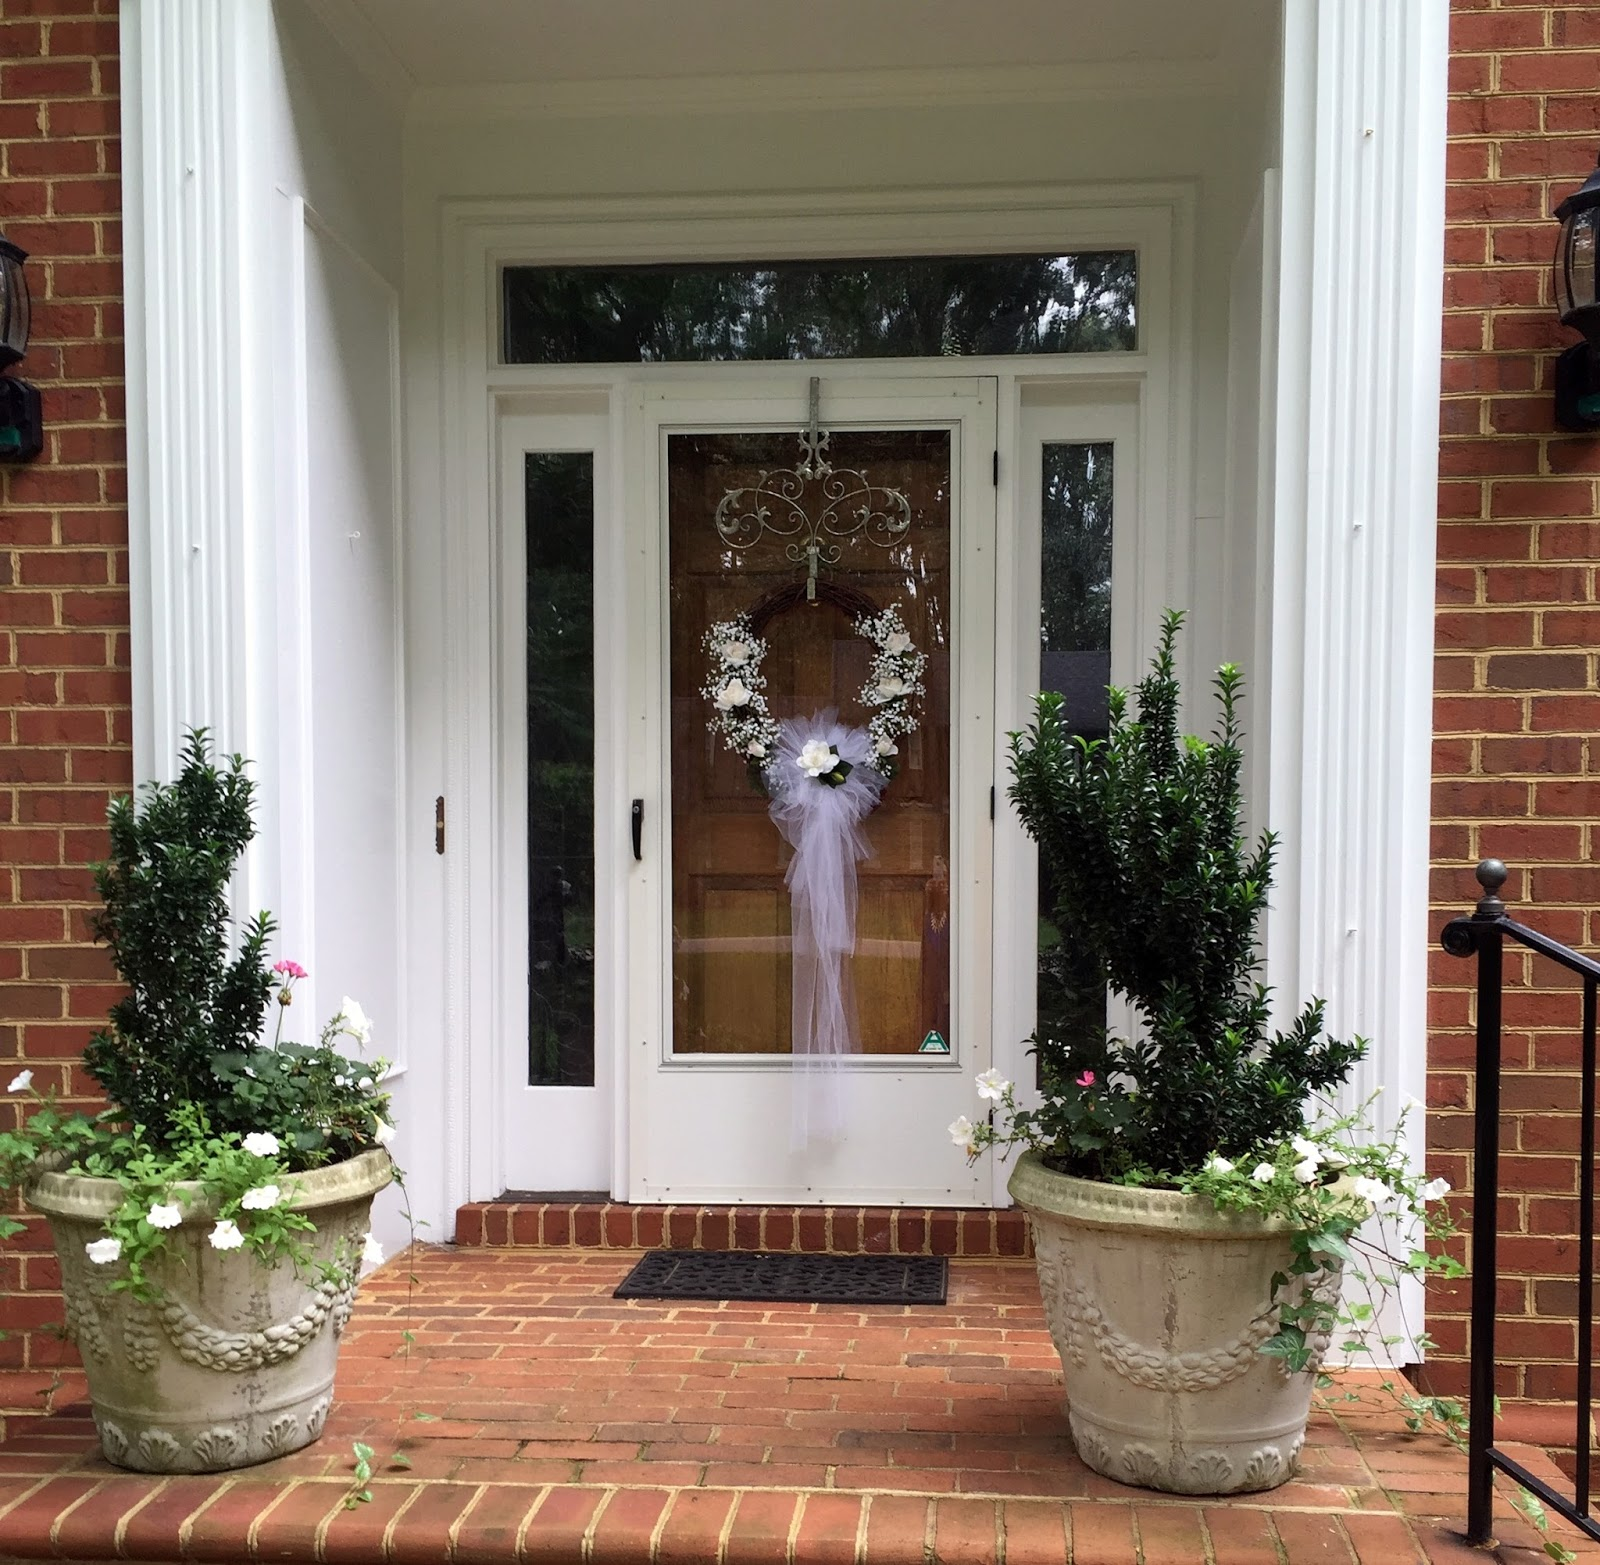 A Bridal Wreath Adorned The Front Door I Used Pew Bow Which Had Made For Wedding Of Friend In Center Along With Roses And Baby S Breath